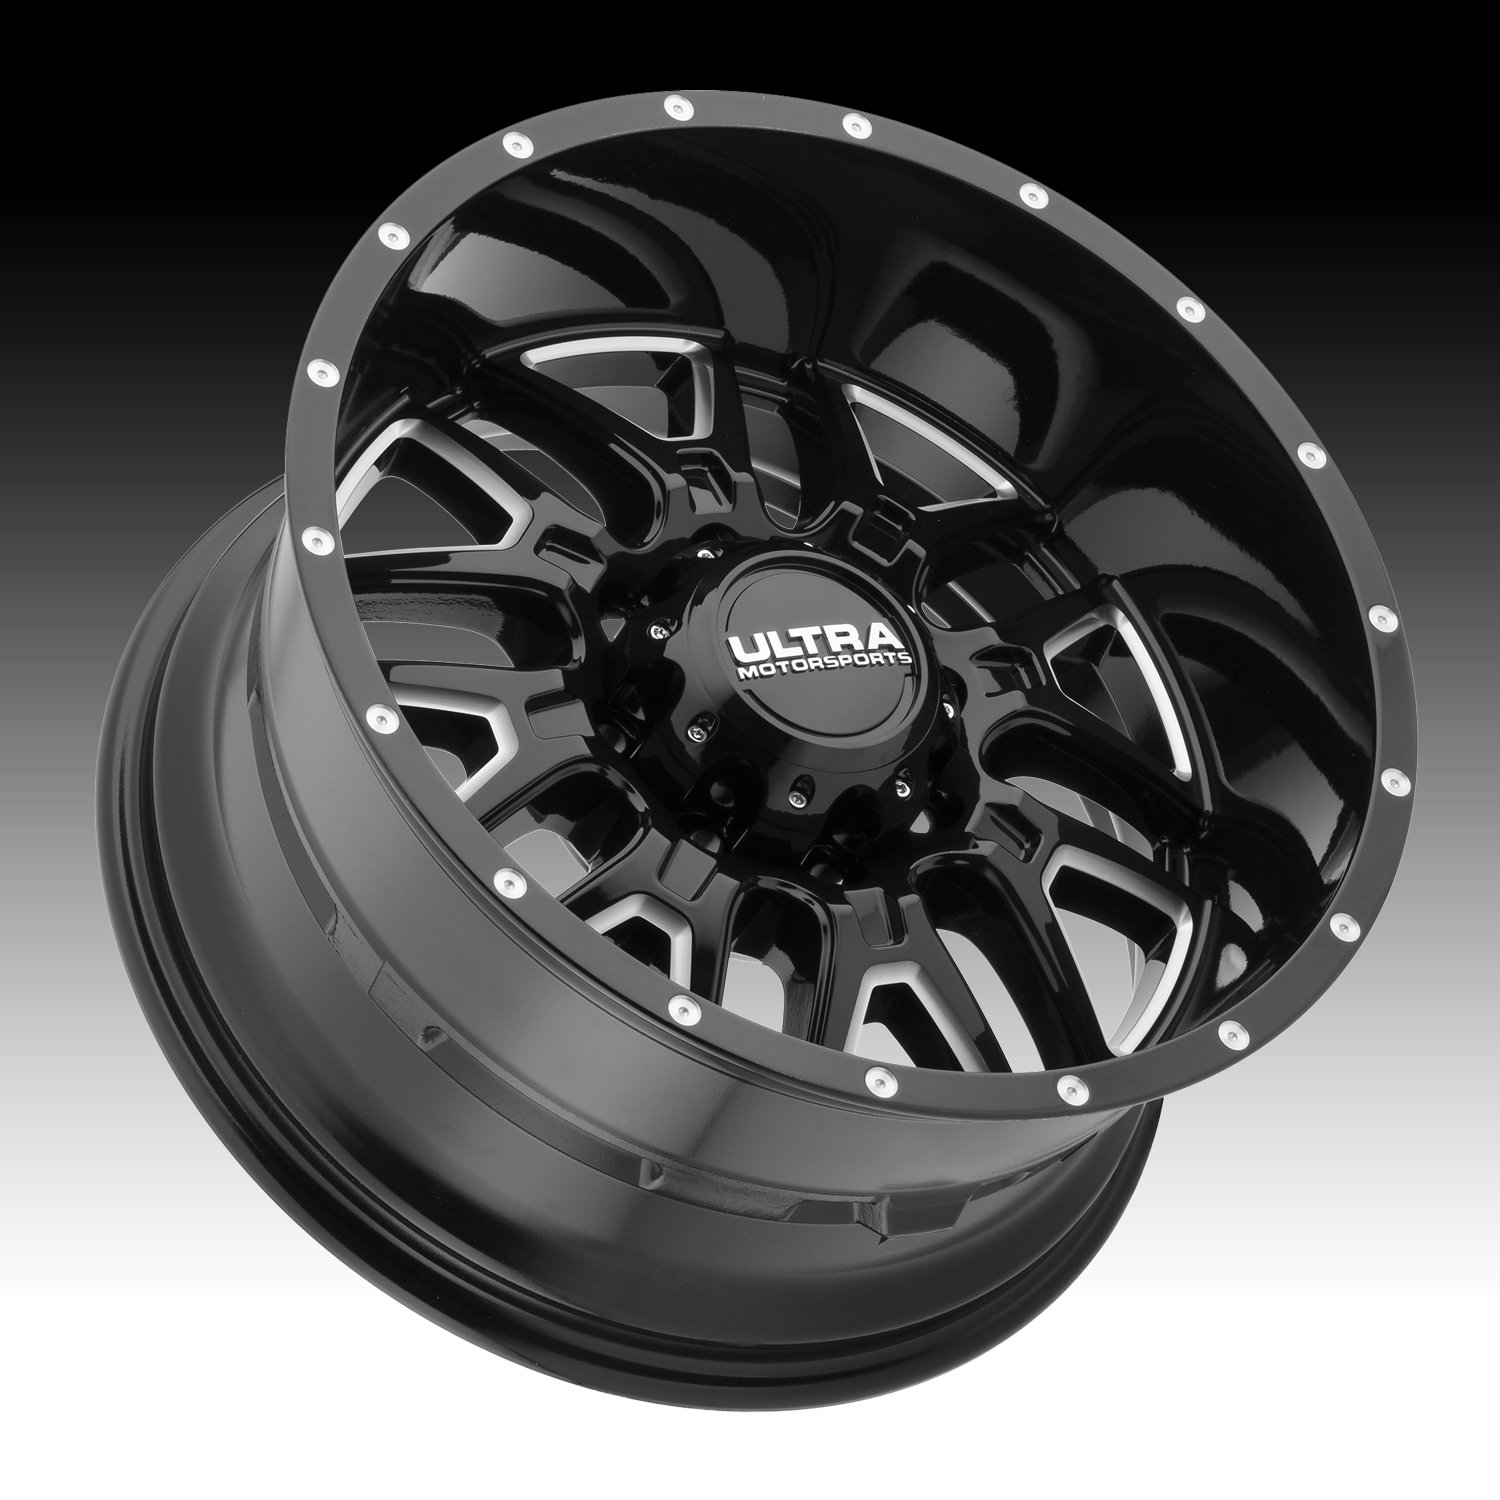 Ultra 203BM Hunter 18x9 5x127 +10mm Black/Milled Wheel Rim by Ultra (Image #2)